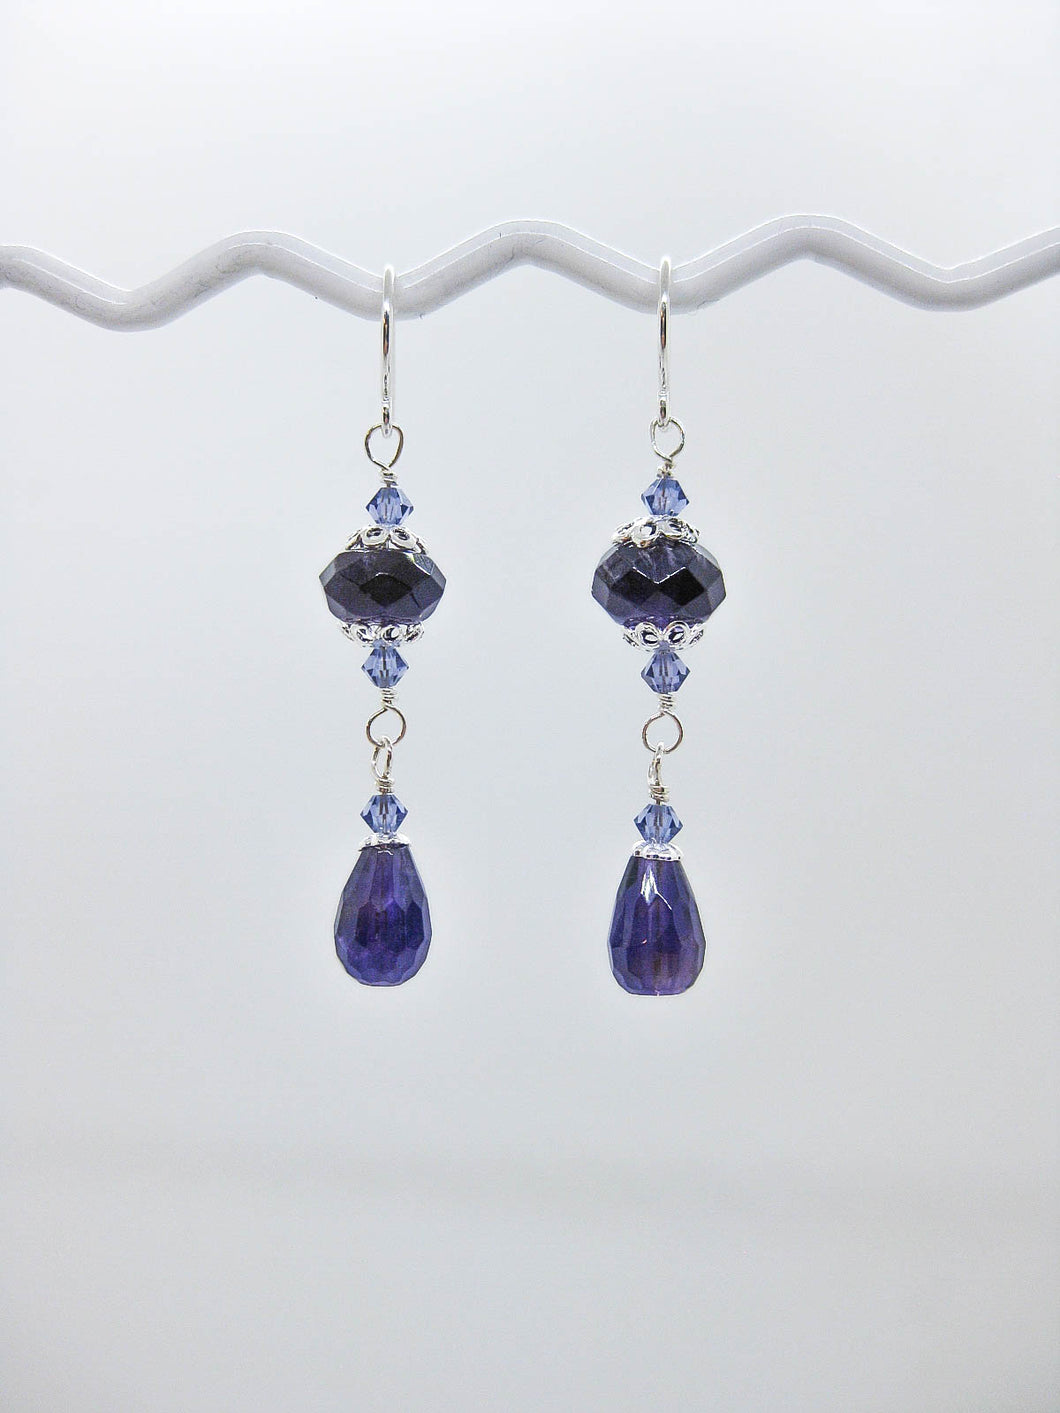 Dahlia: Amethyst Earrings, Med - e477m